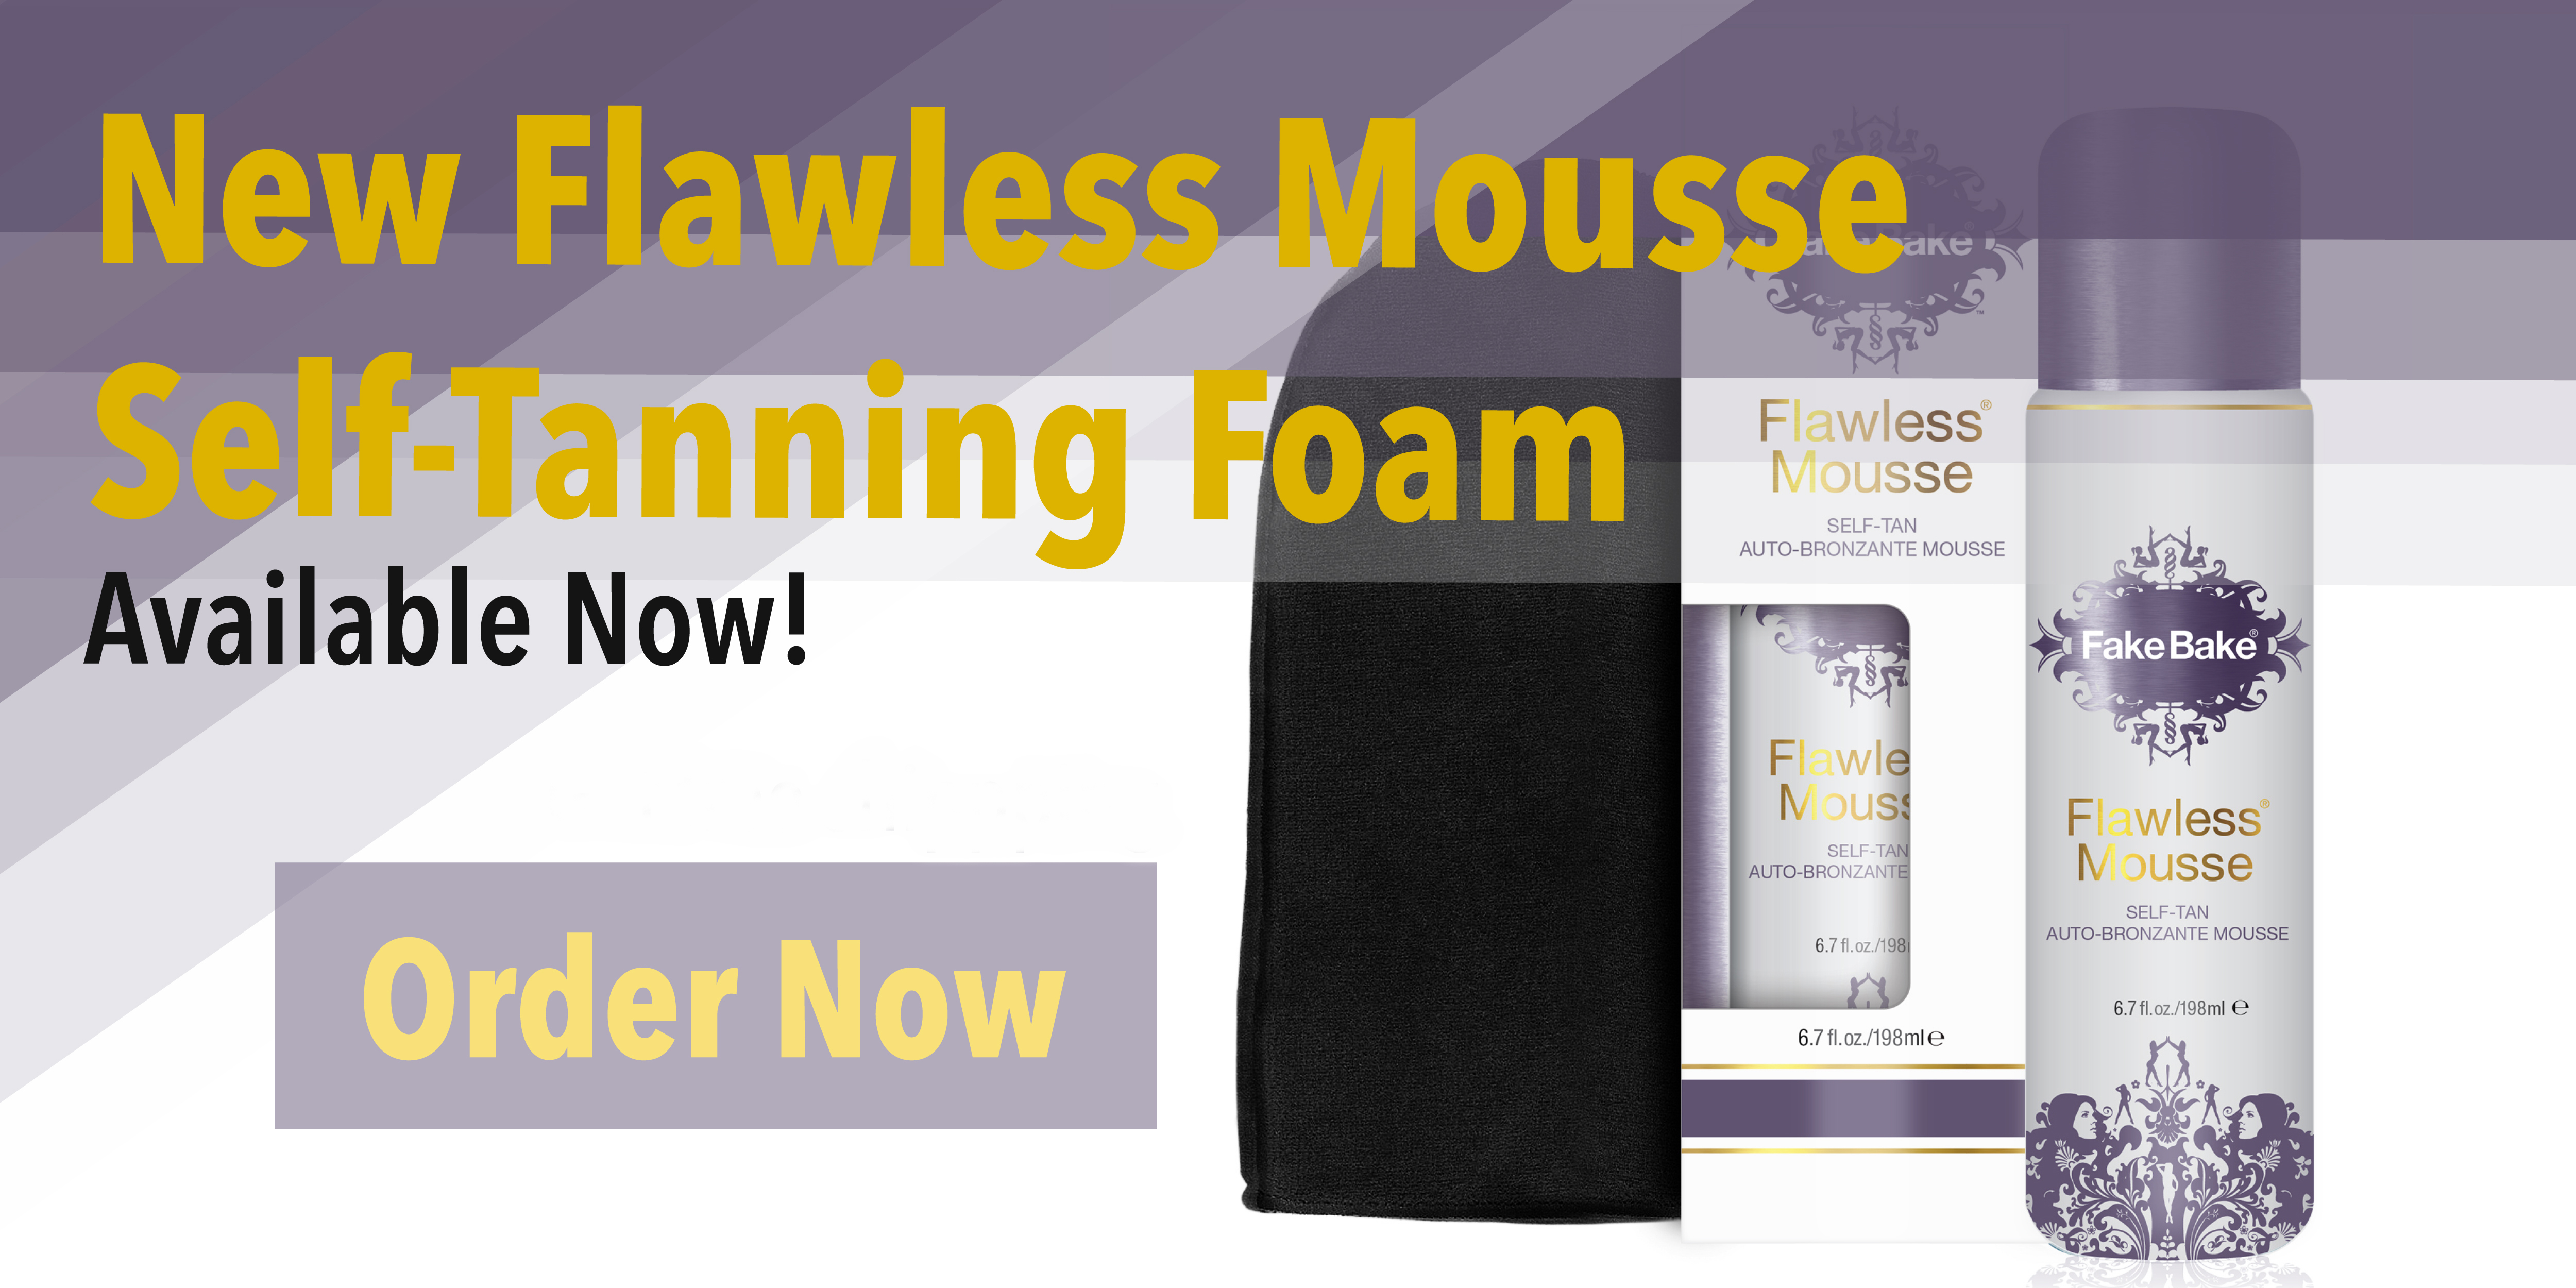 New Flawless Mousse